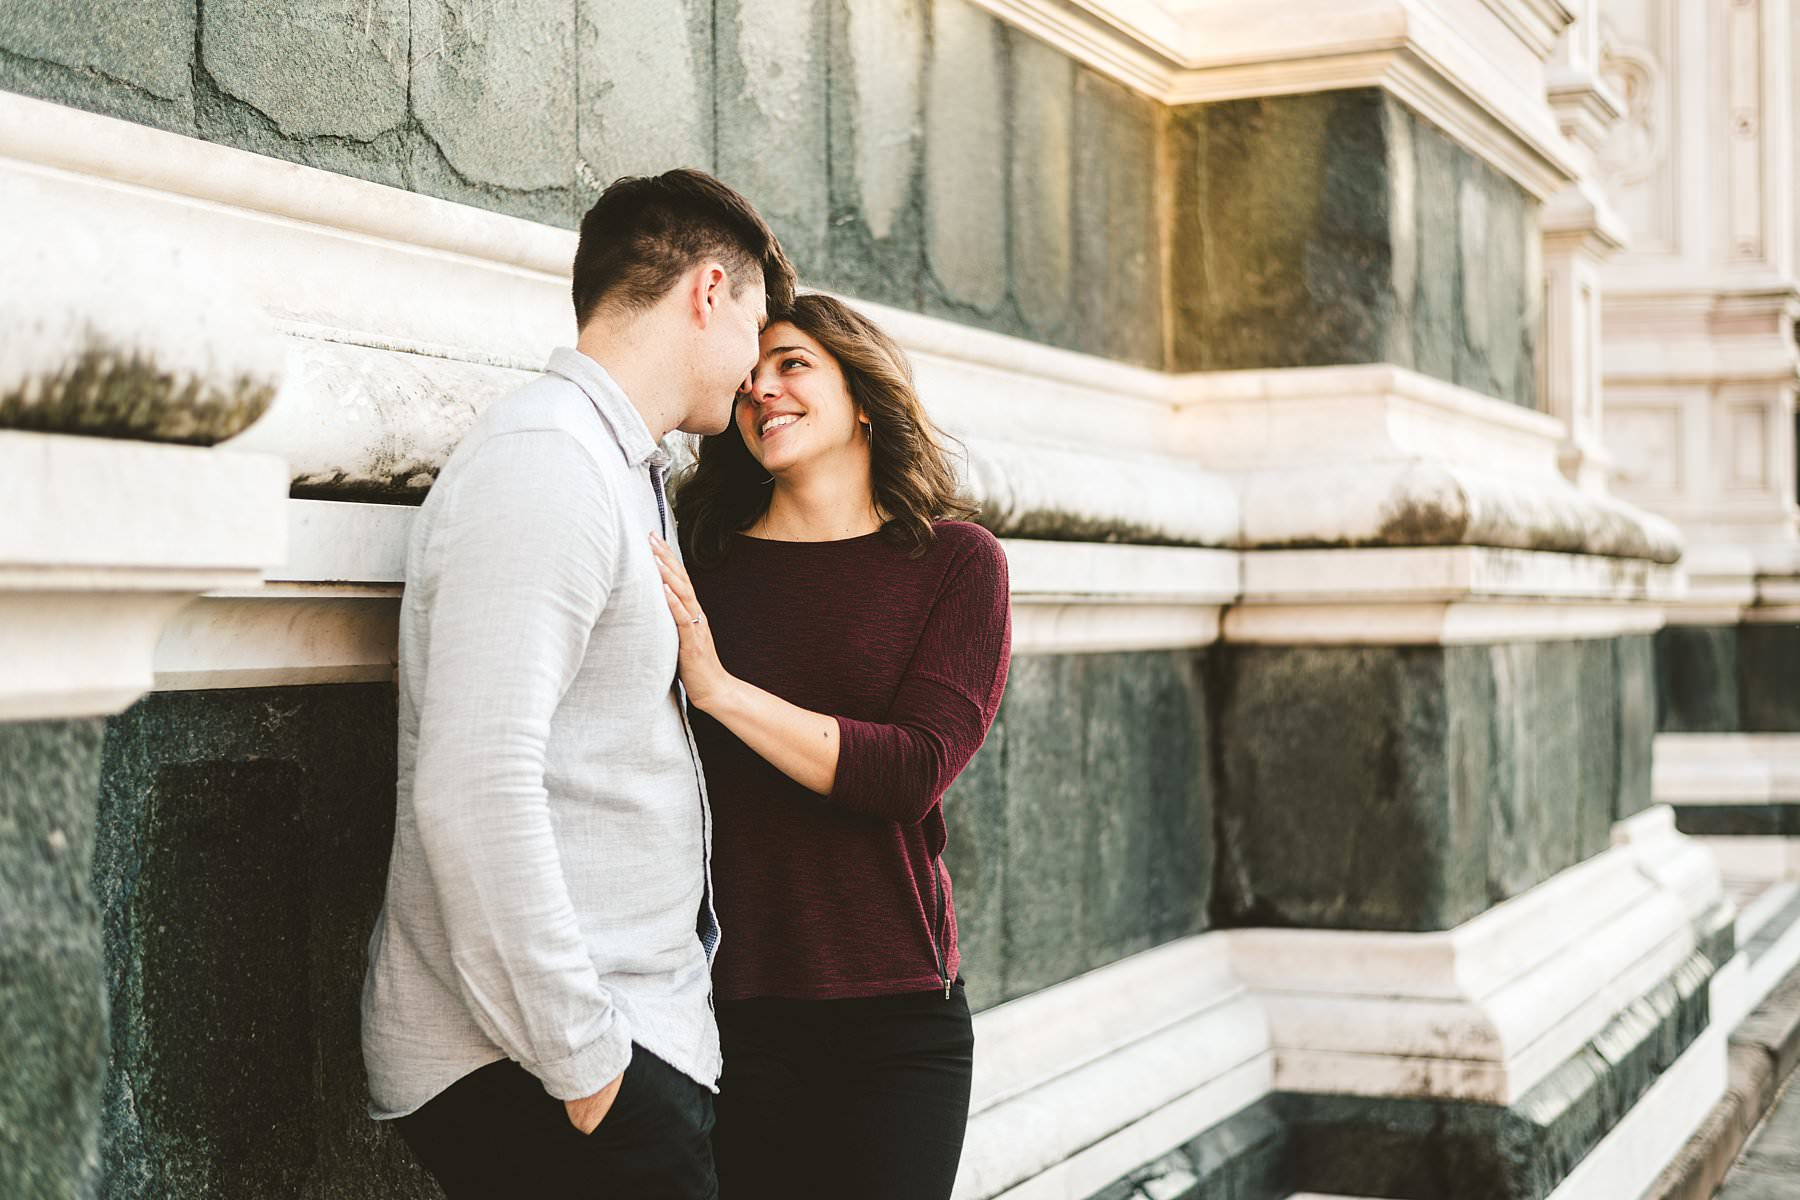 Claudia and Andrew's exciting and smiling engagement photo session at Piazza Santa Croce in the heart of Florence. Enjoy your walk photo tour in the Cradle of Renaissance and build your memories to cherish forever